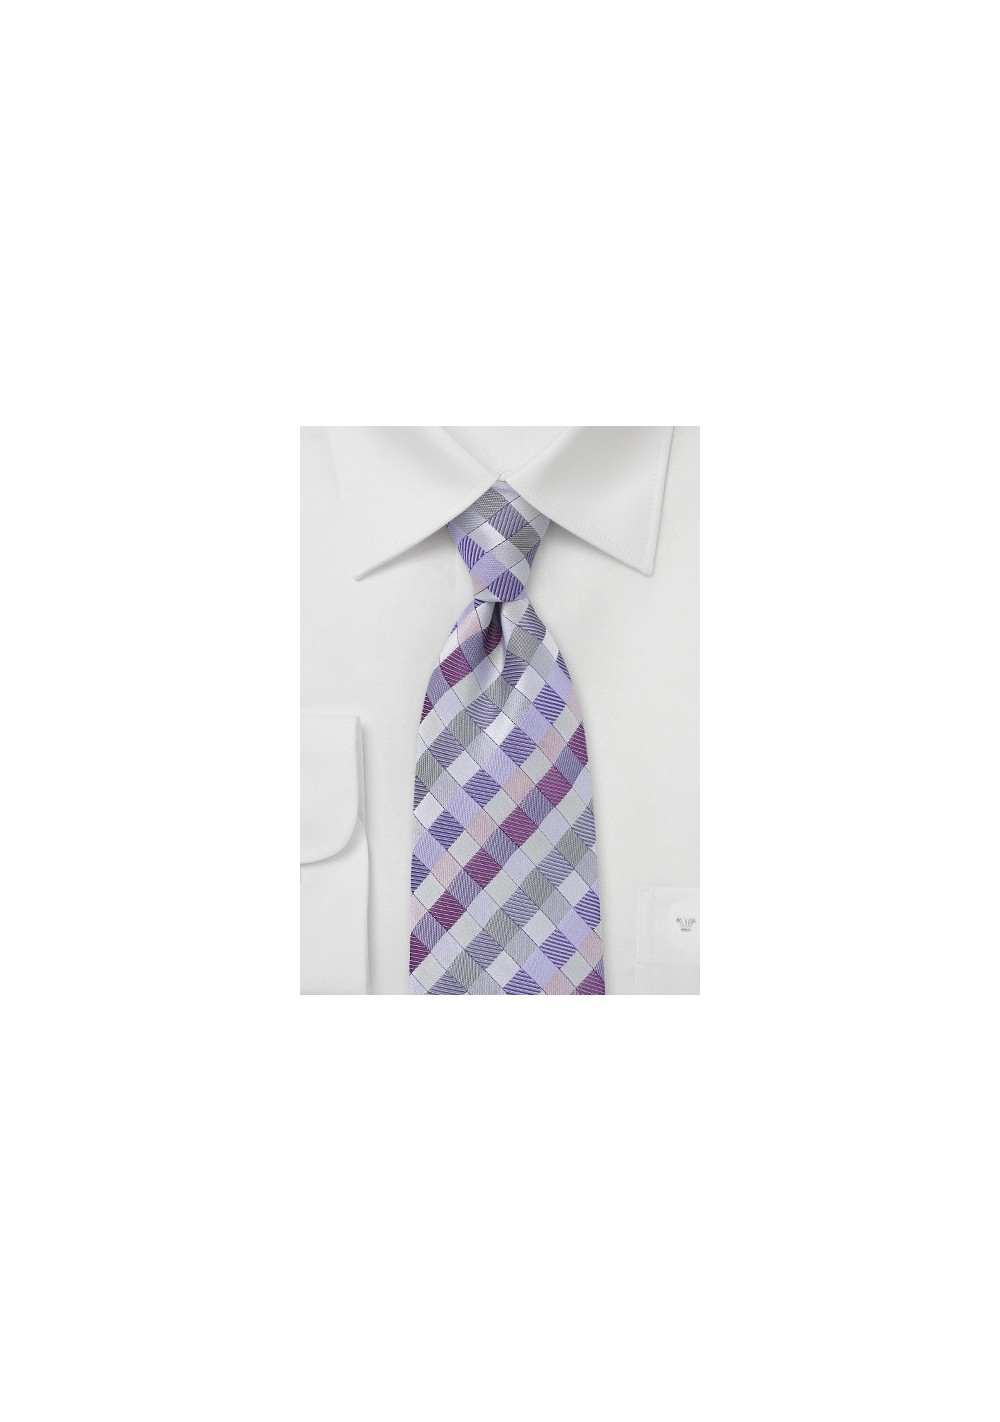 Patchwork Tie in Silvers and Purples